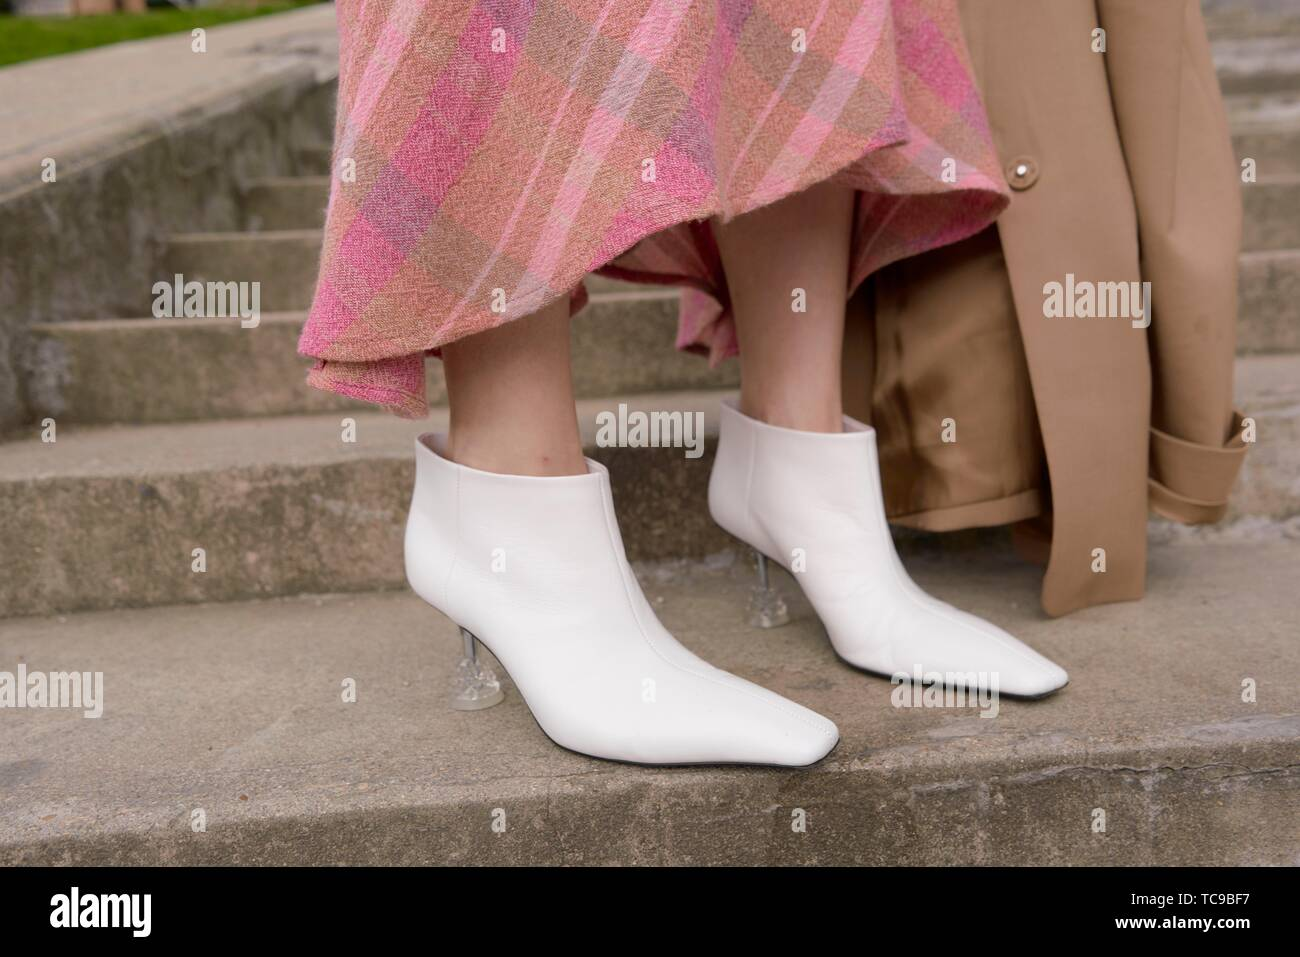 white high heels on stairs, stylish shoes of fashionable blogger woman during fashion week, in city Paris, France, in city Paris, France - Stock Image